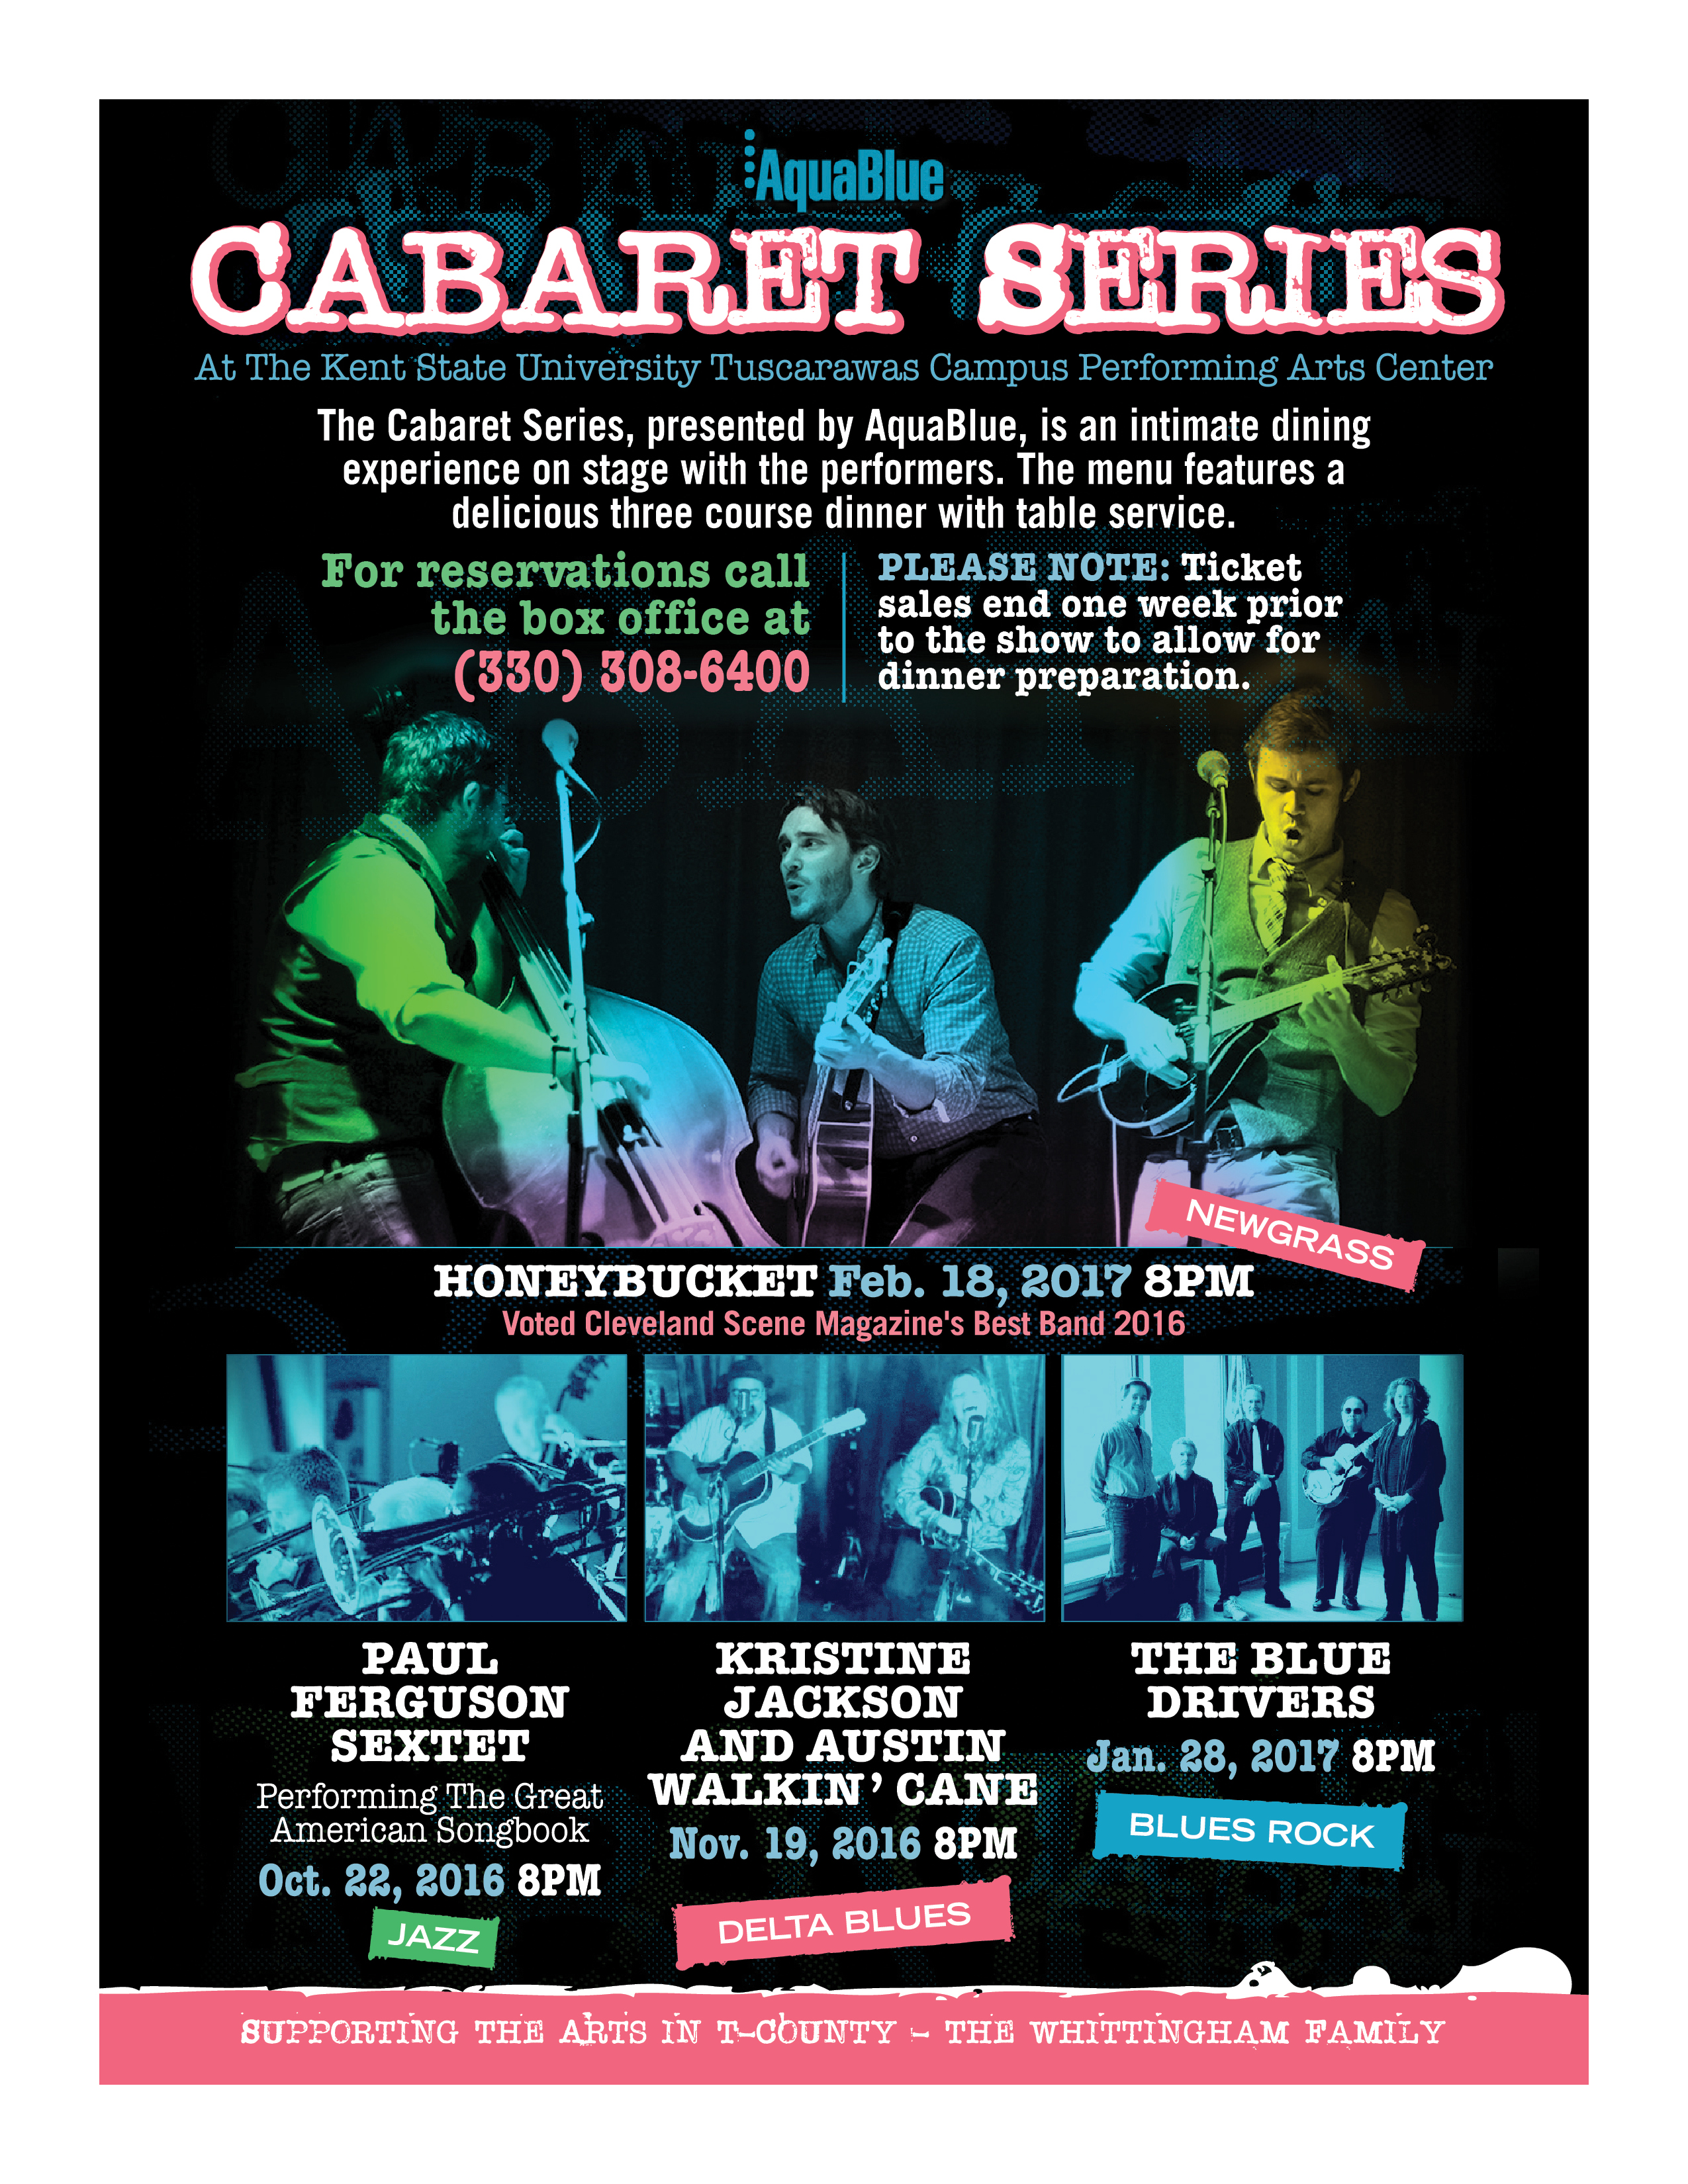 The Cabaret Series, presented by AquaBlue at the Kent Tusc Performing Arts Center.